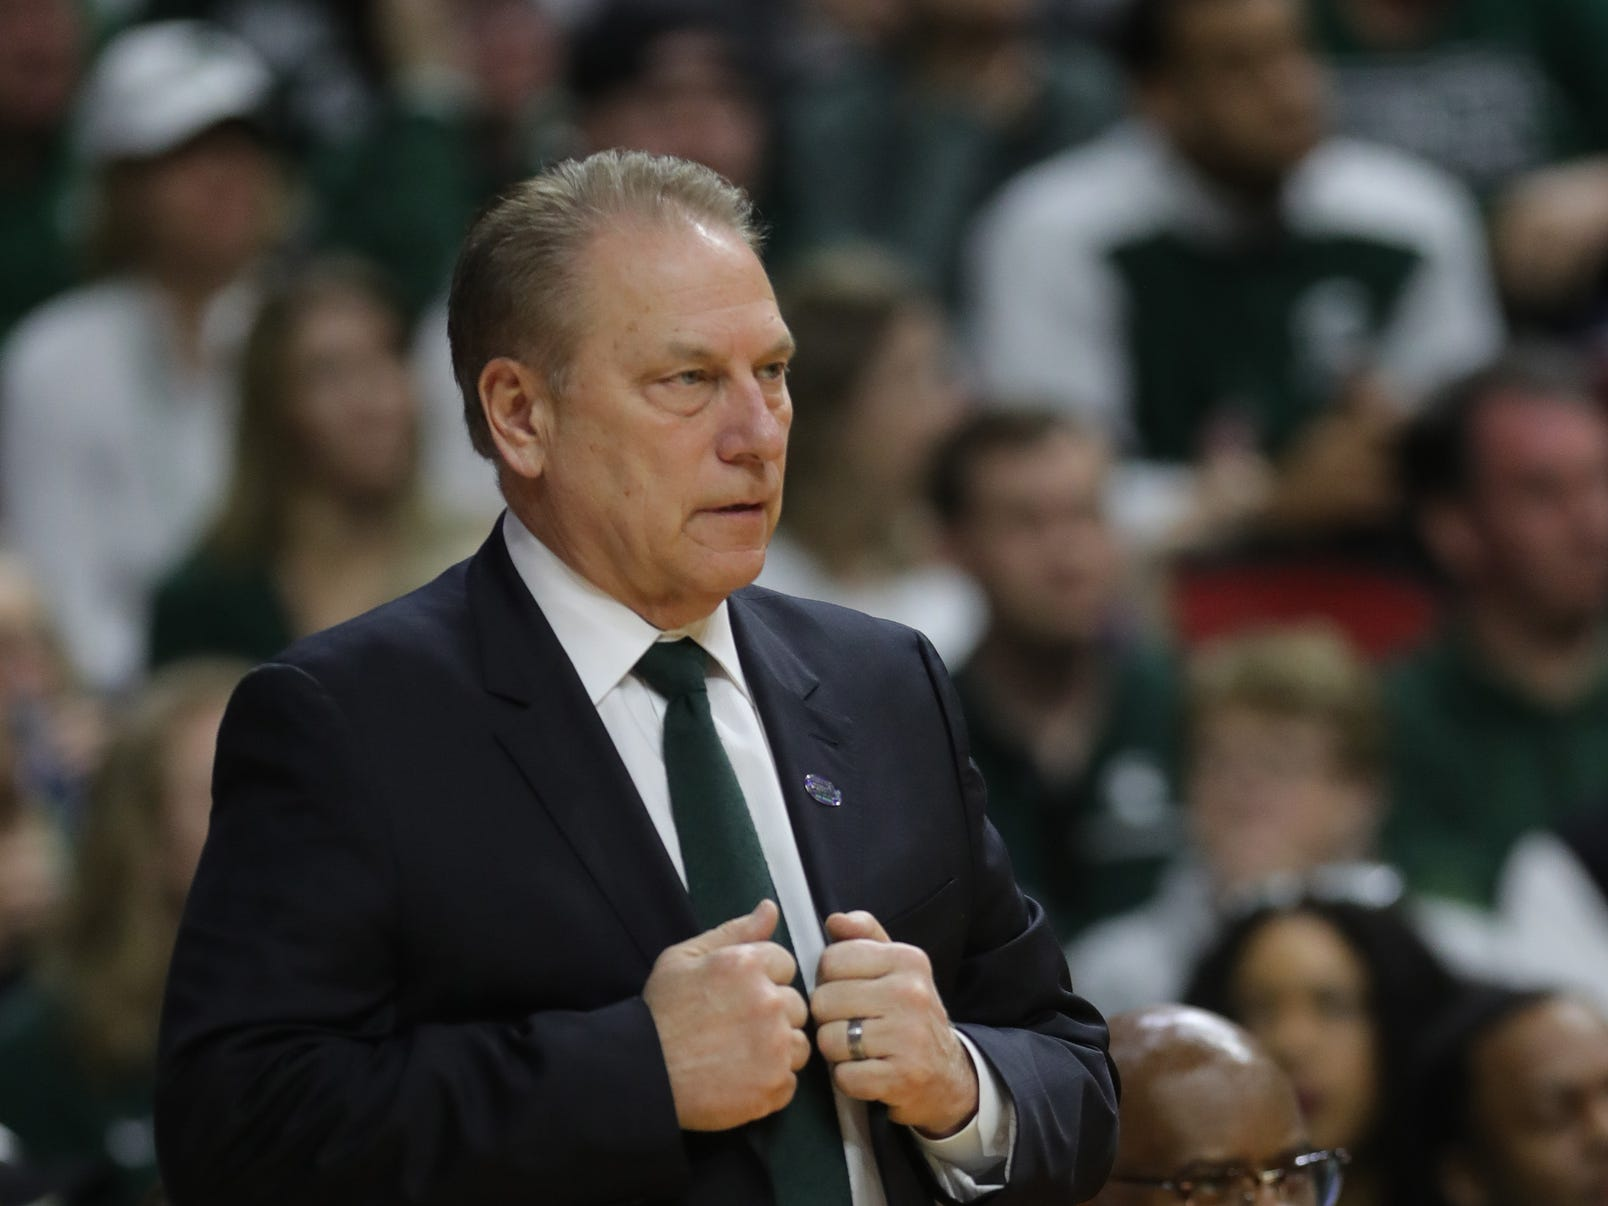 Michigan State coach Tom Izzo during the second half against Minnesota in the NCAA tournament Saturday, March 23, 2019 at Wells Fargo Arena in Des Moines, Iowa.